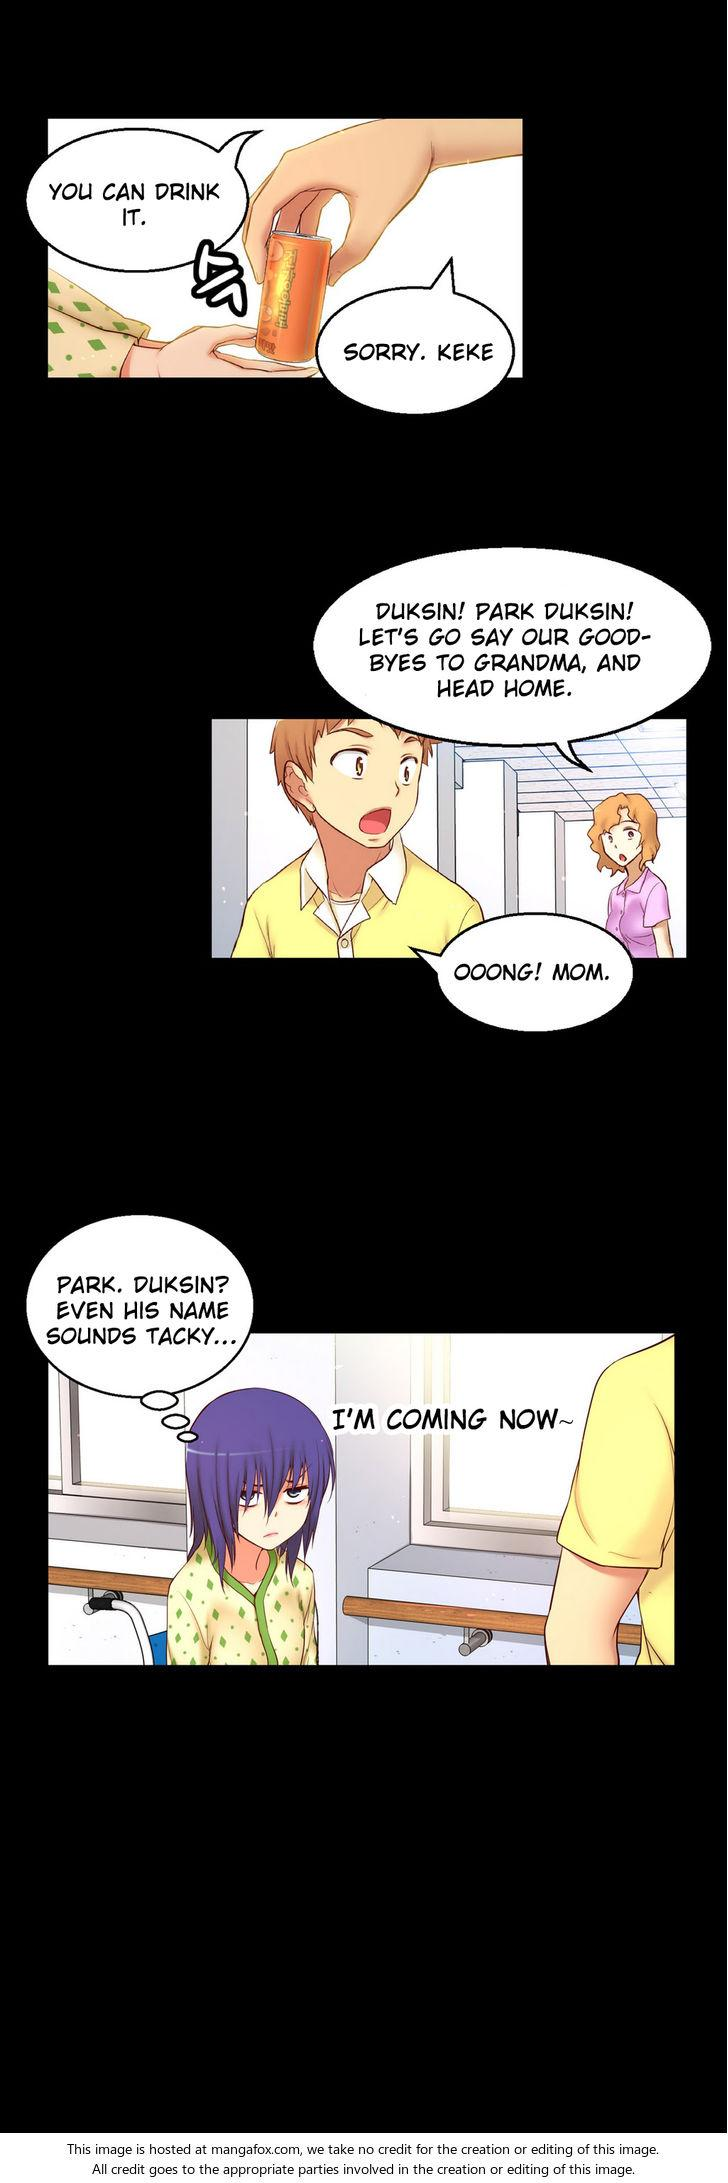 [Donggul Gom] She is Young (English) Part 1/2 1381